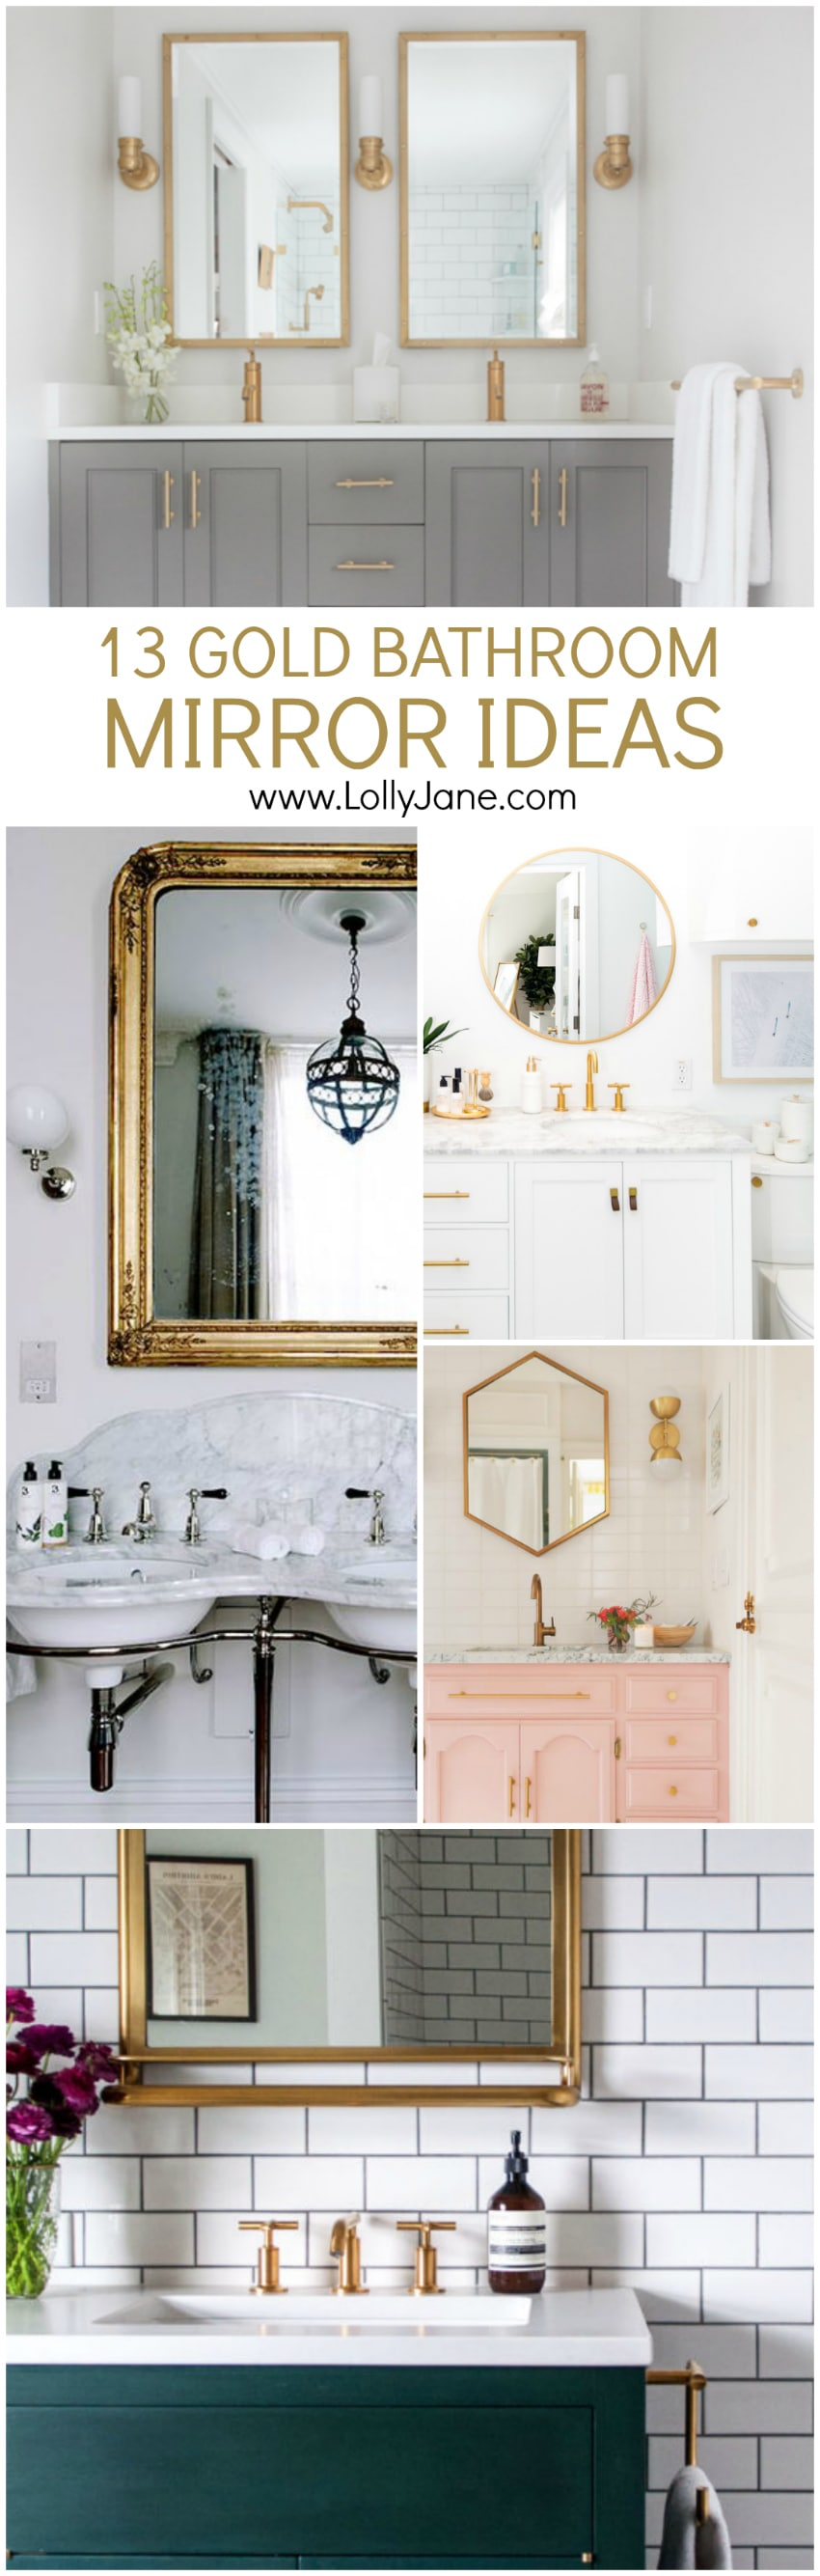 13 gold bathroom mirror ideas looking for a new bathroom mirror weve - Bathroom Mirror Ideas